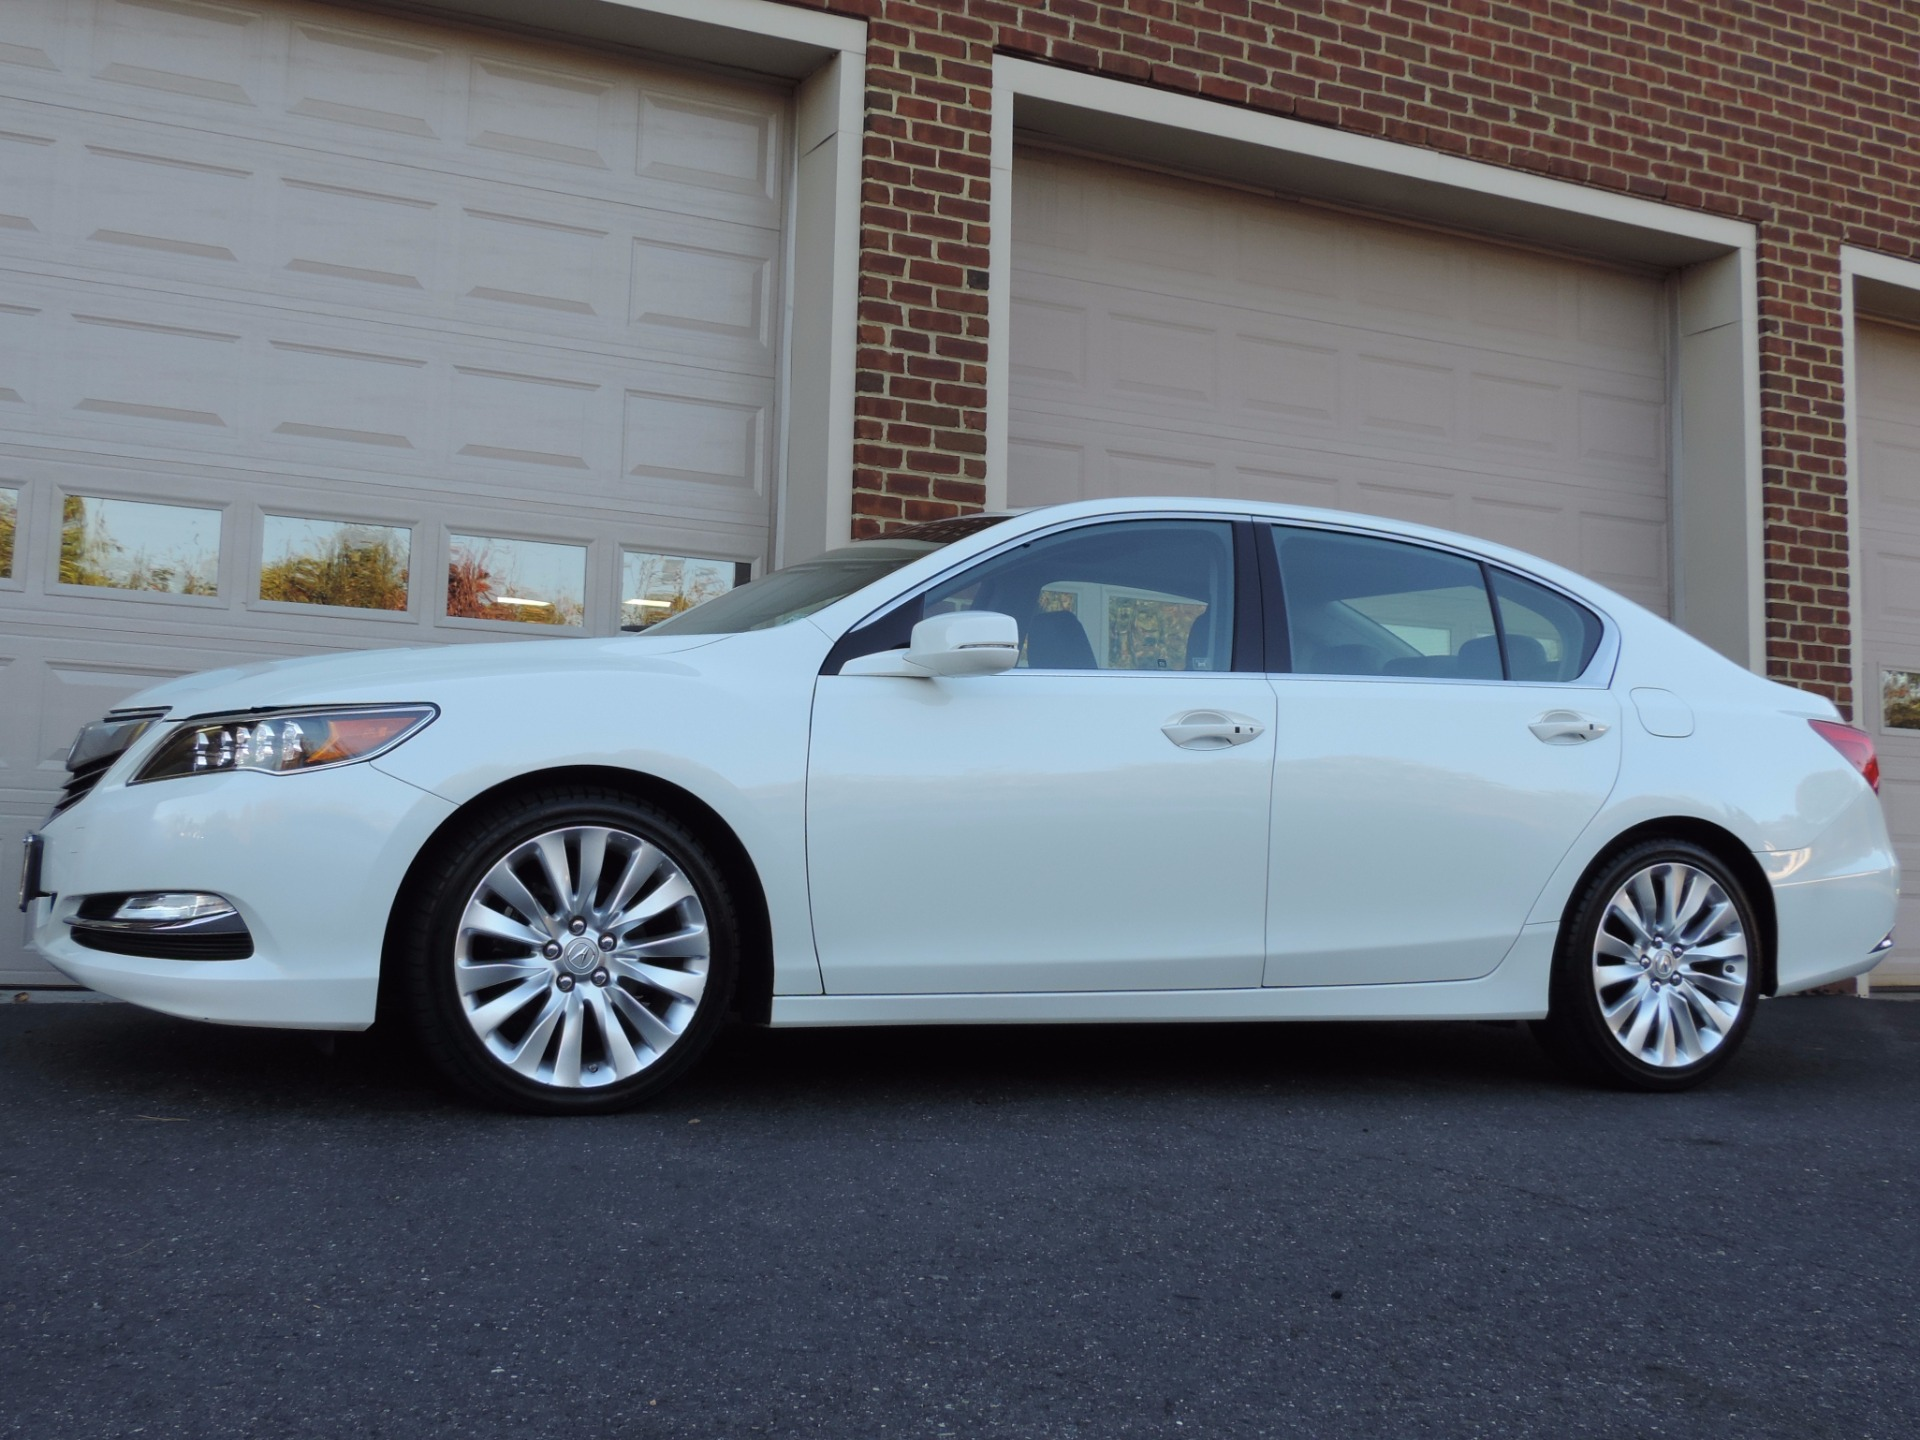 rlx gimme lovely sale rl of go best a and acura stop brake for cargurus advance cars the handles